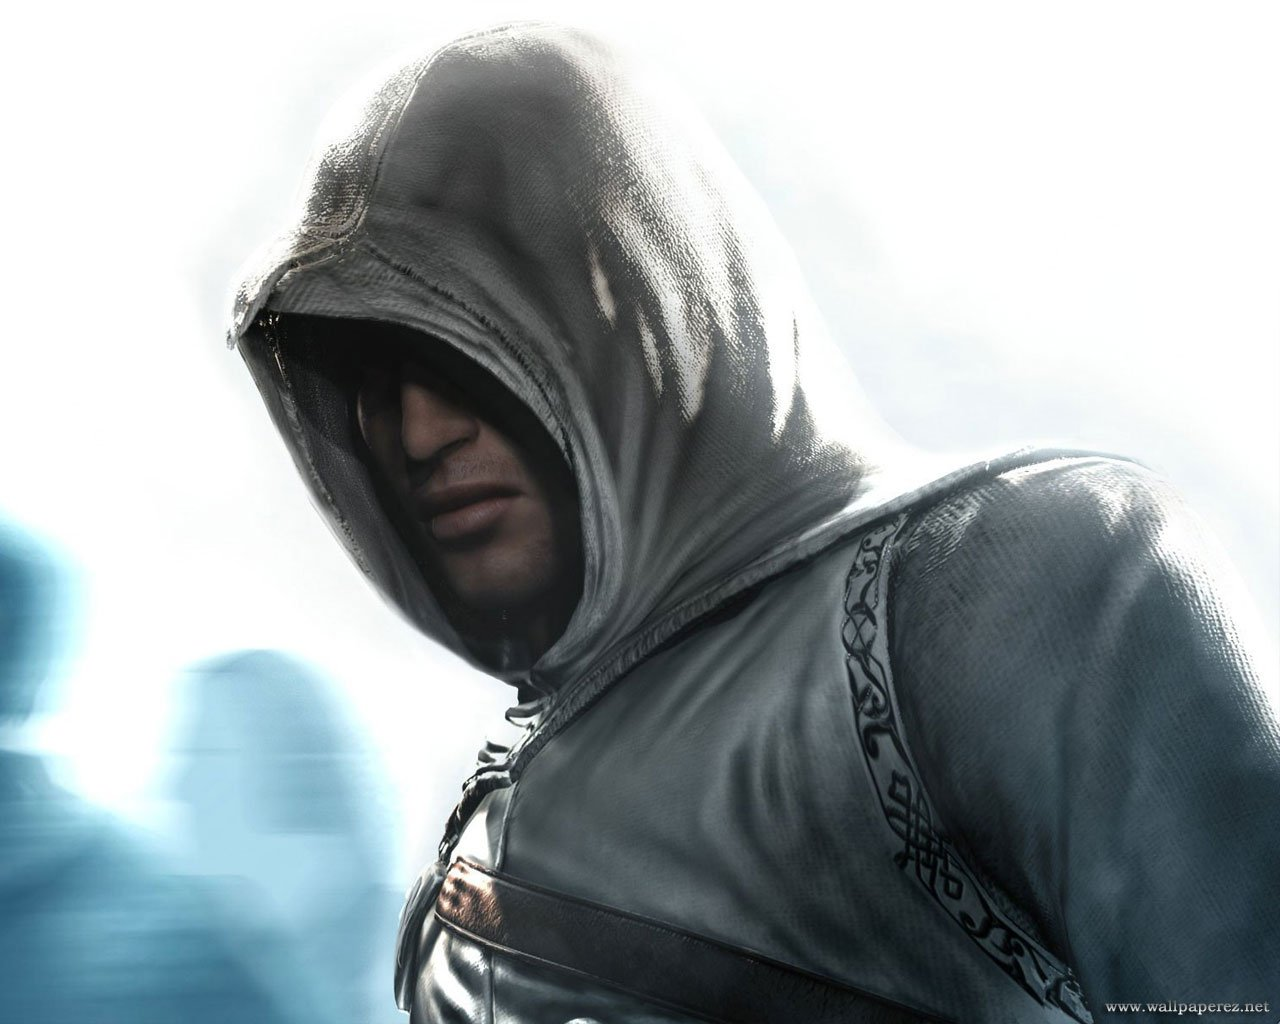 Heres 25 great Assassins Creed wallpapers to download 1280x1024